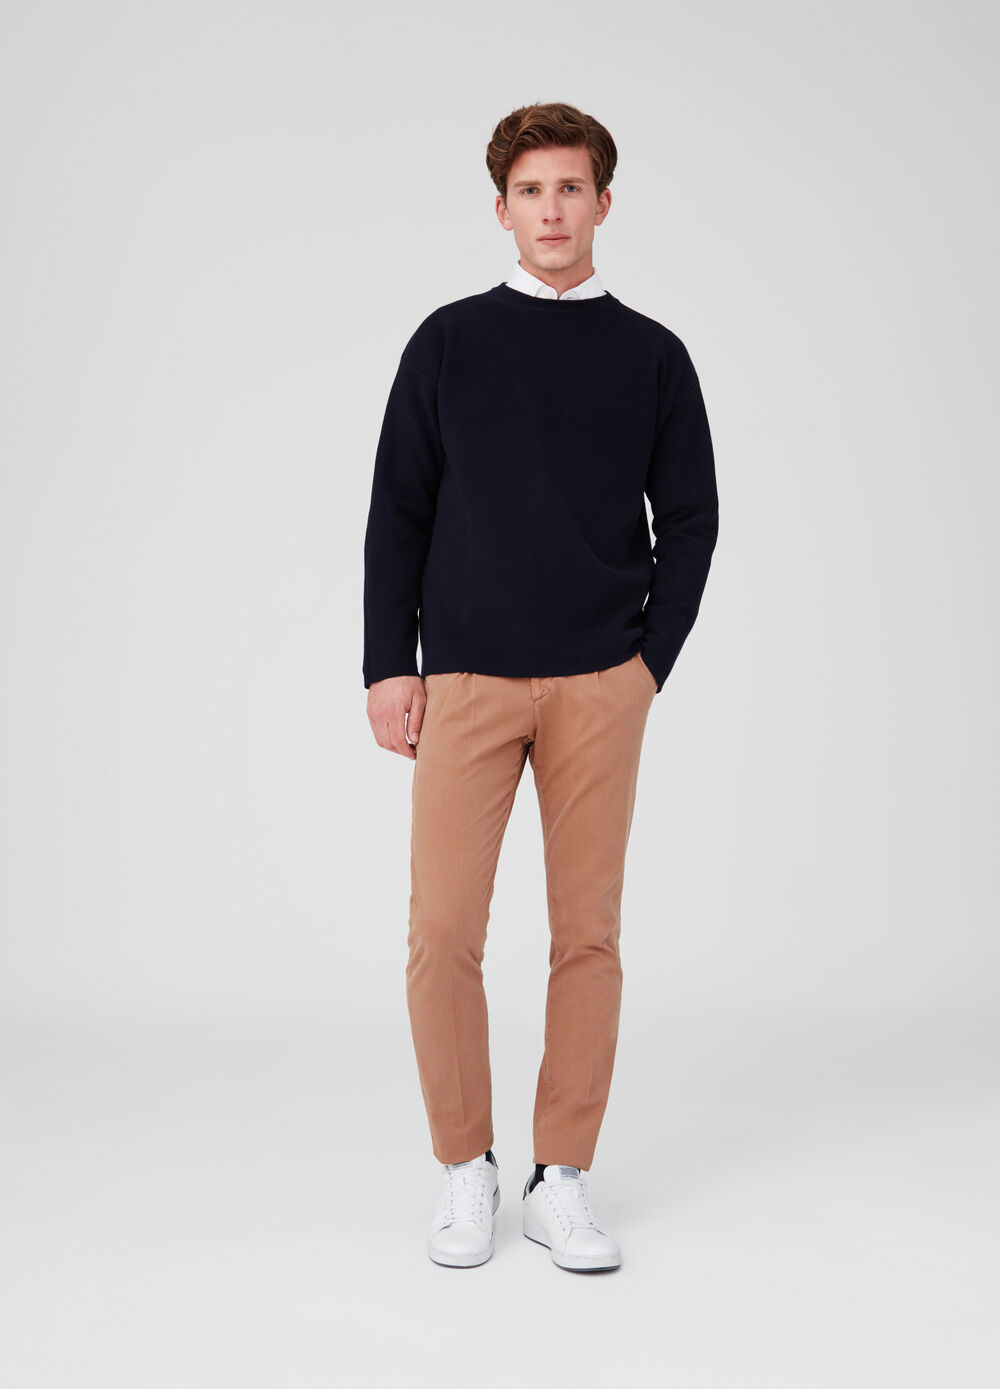 Rumford 100% cotton ribbed pullover